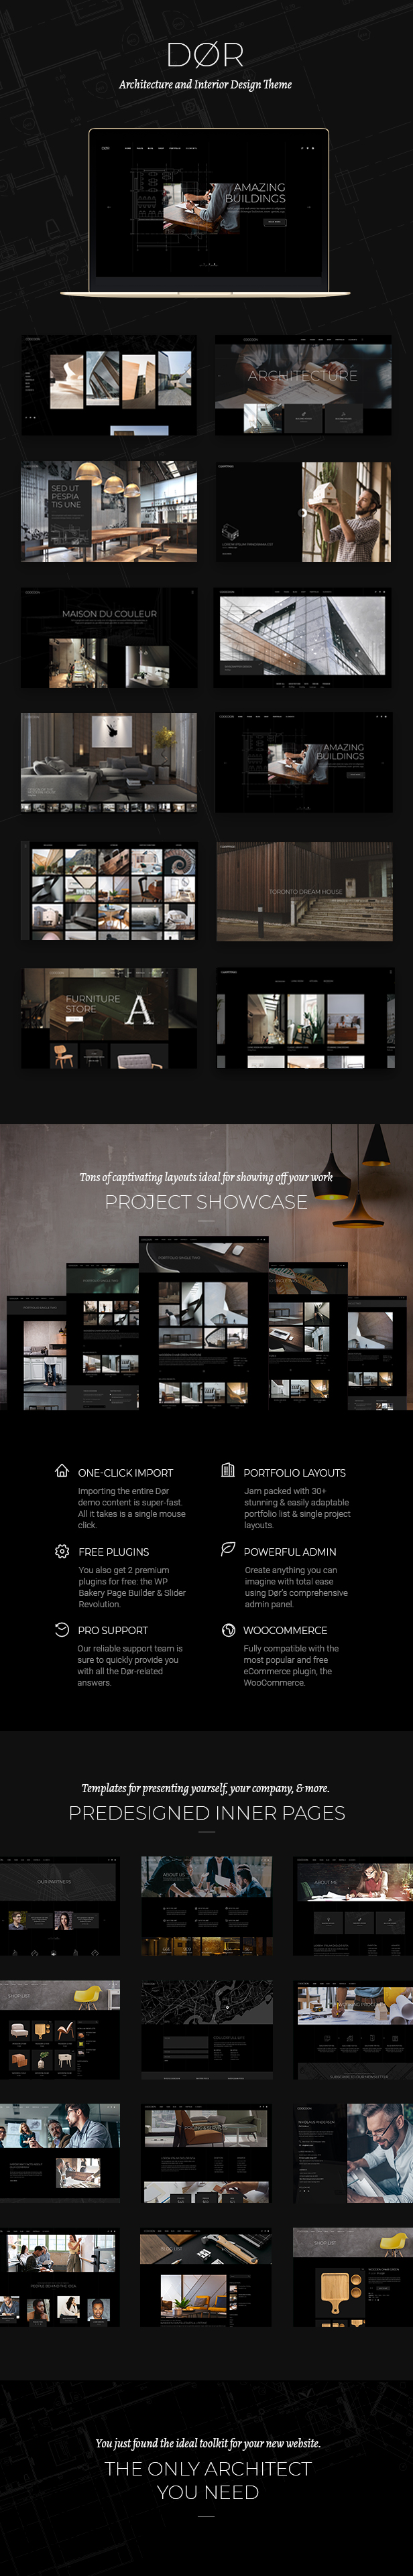 Dør - Modern Architecture and Interior Design Theme - 1